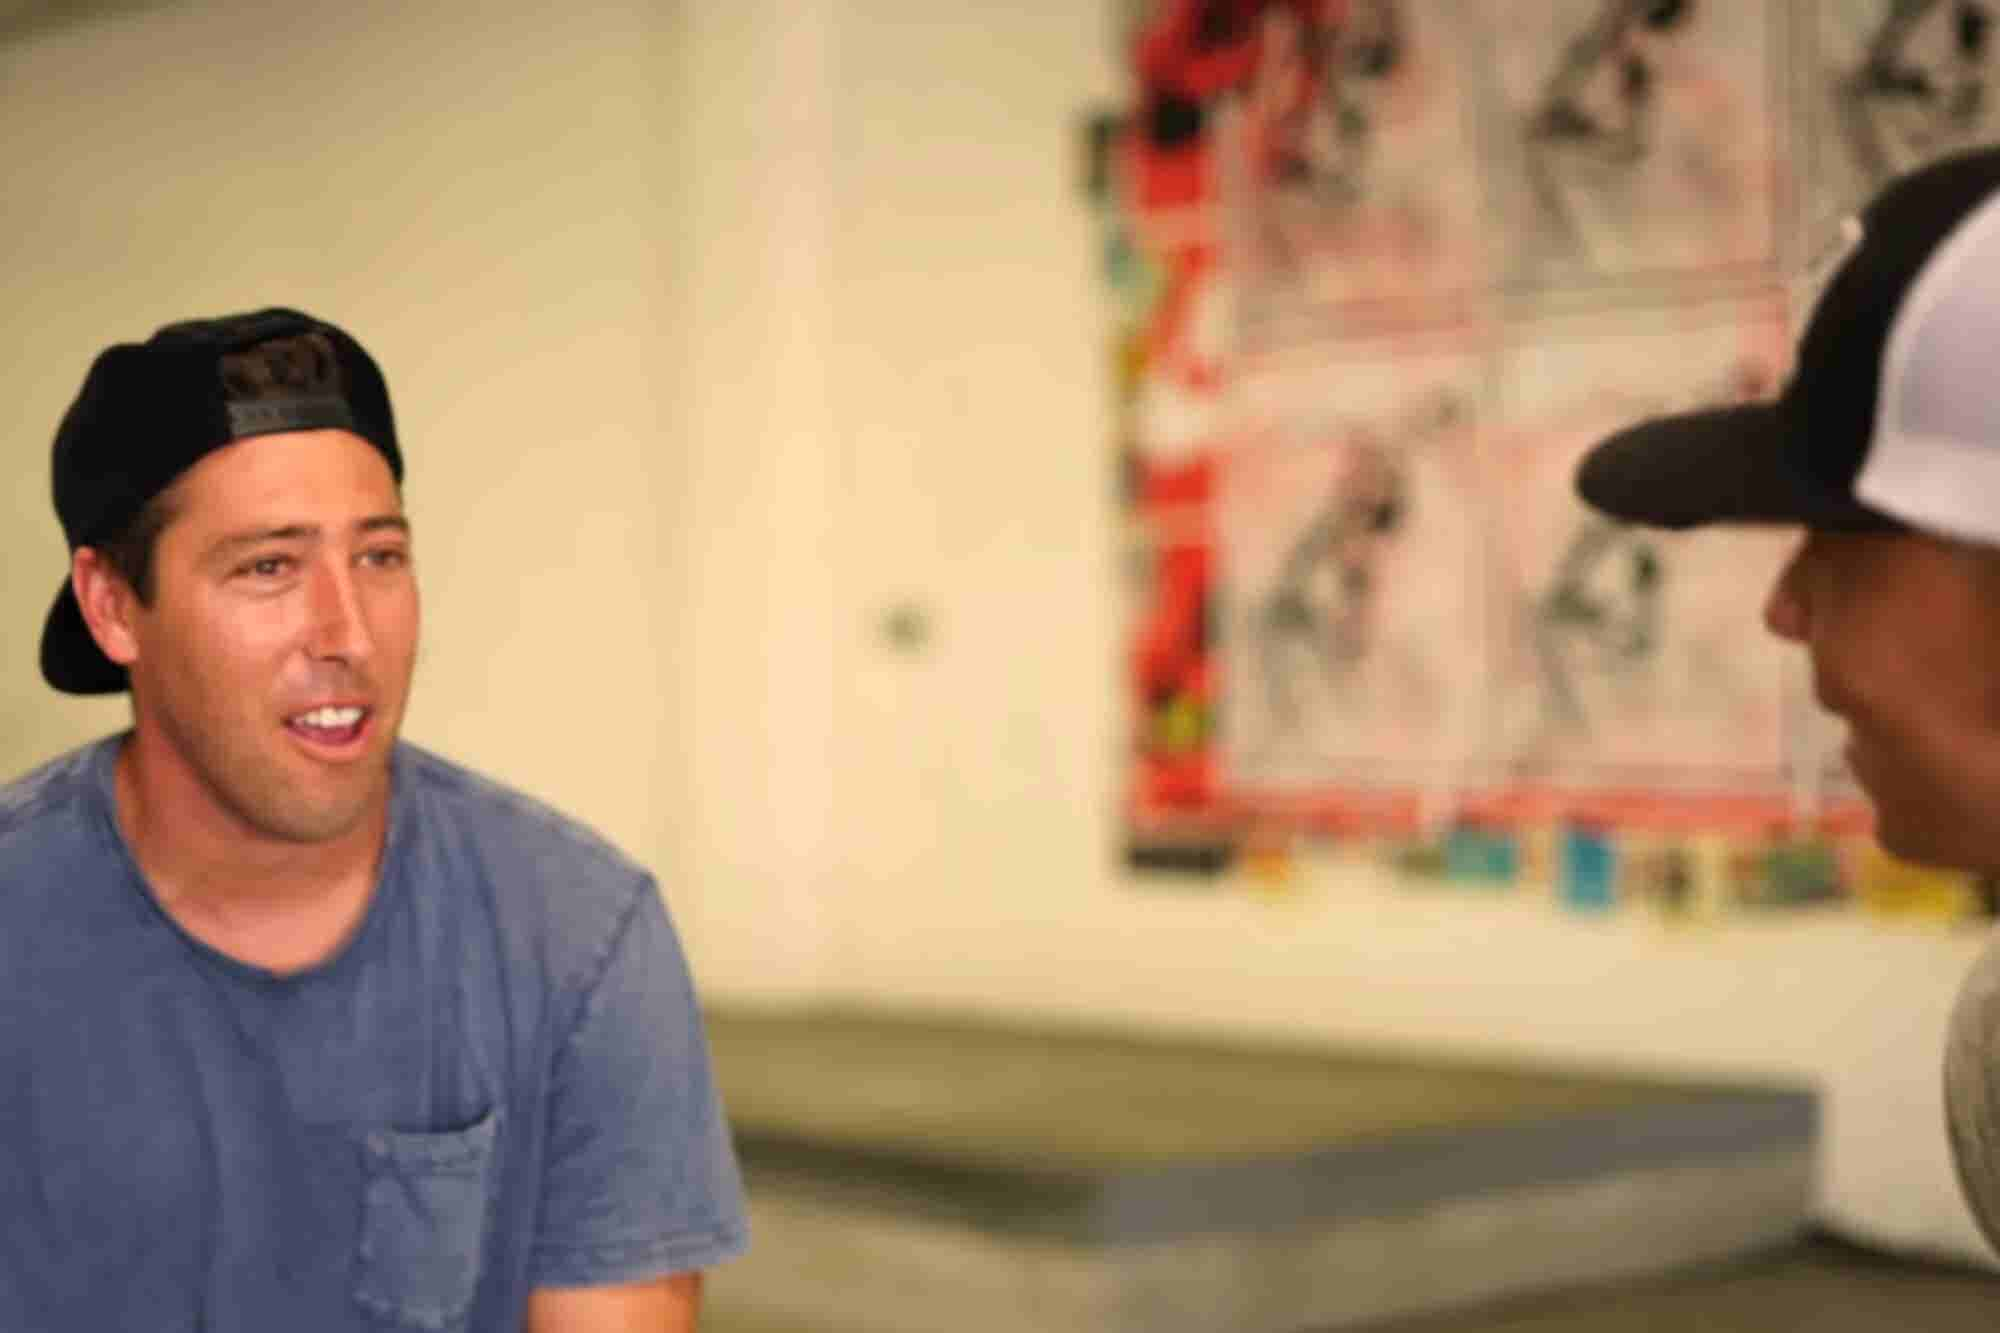 How This Professional Skateboarder Built His Passive Income Streams Through Smart Investments